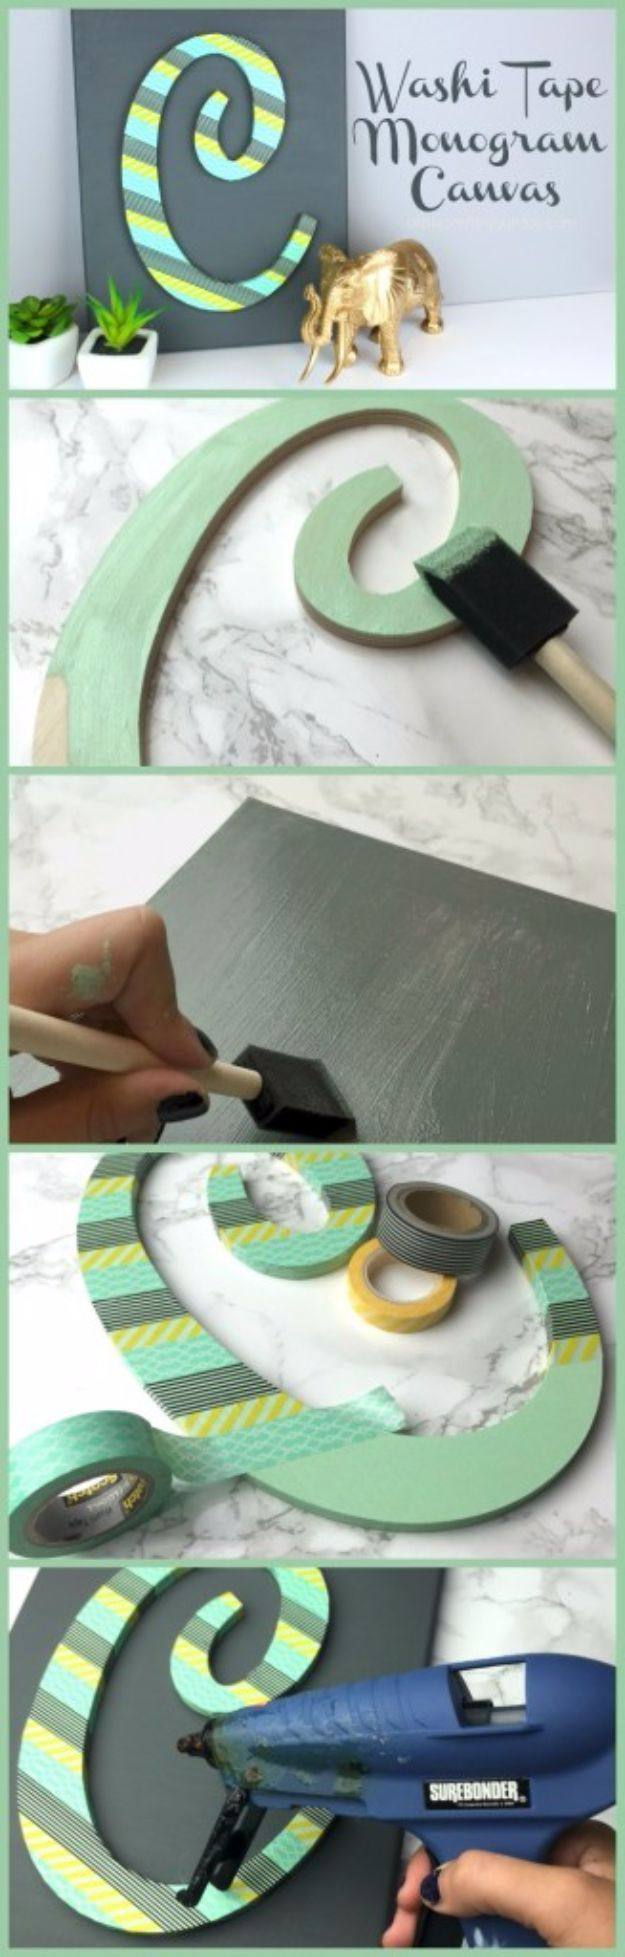 DIY Wall Letters and Word Signs - Washi Tape Monogram Canvas - Initials Wall Art for Creative Home Decor Ideas - Cool Architectural Letter Projects and Wall Art Tutorials for Living Room Decor, Bedroom Ideas. Girl or Boy Nursery. Paint, Glitter, String Art, Easy Cardboard and Rustic Wooden Ideas - DIY Projects and Crafts by DIY JOY http://diyjoy.com/diy-letter-word-signs